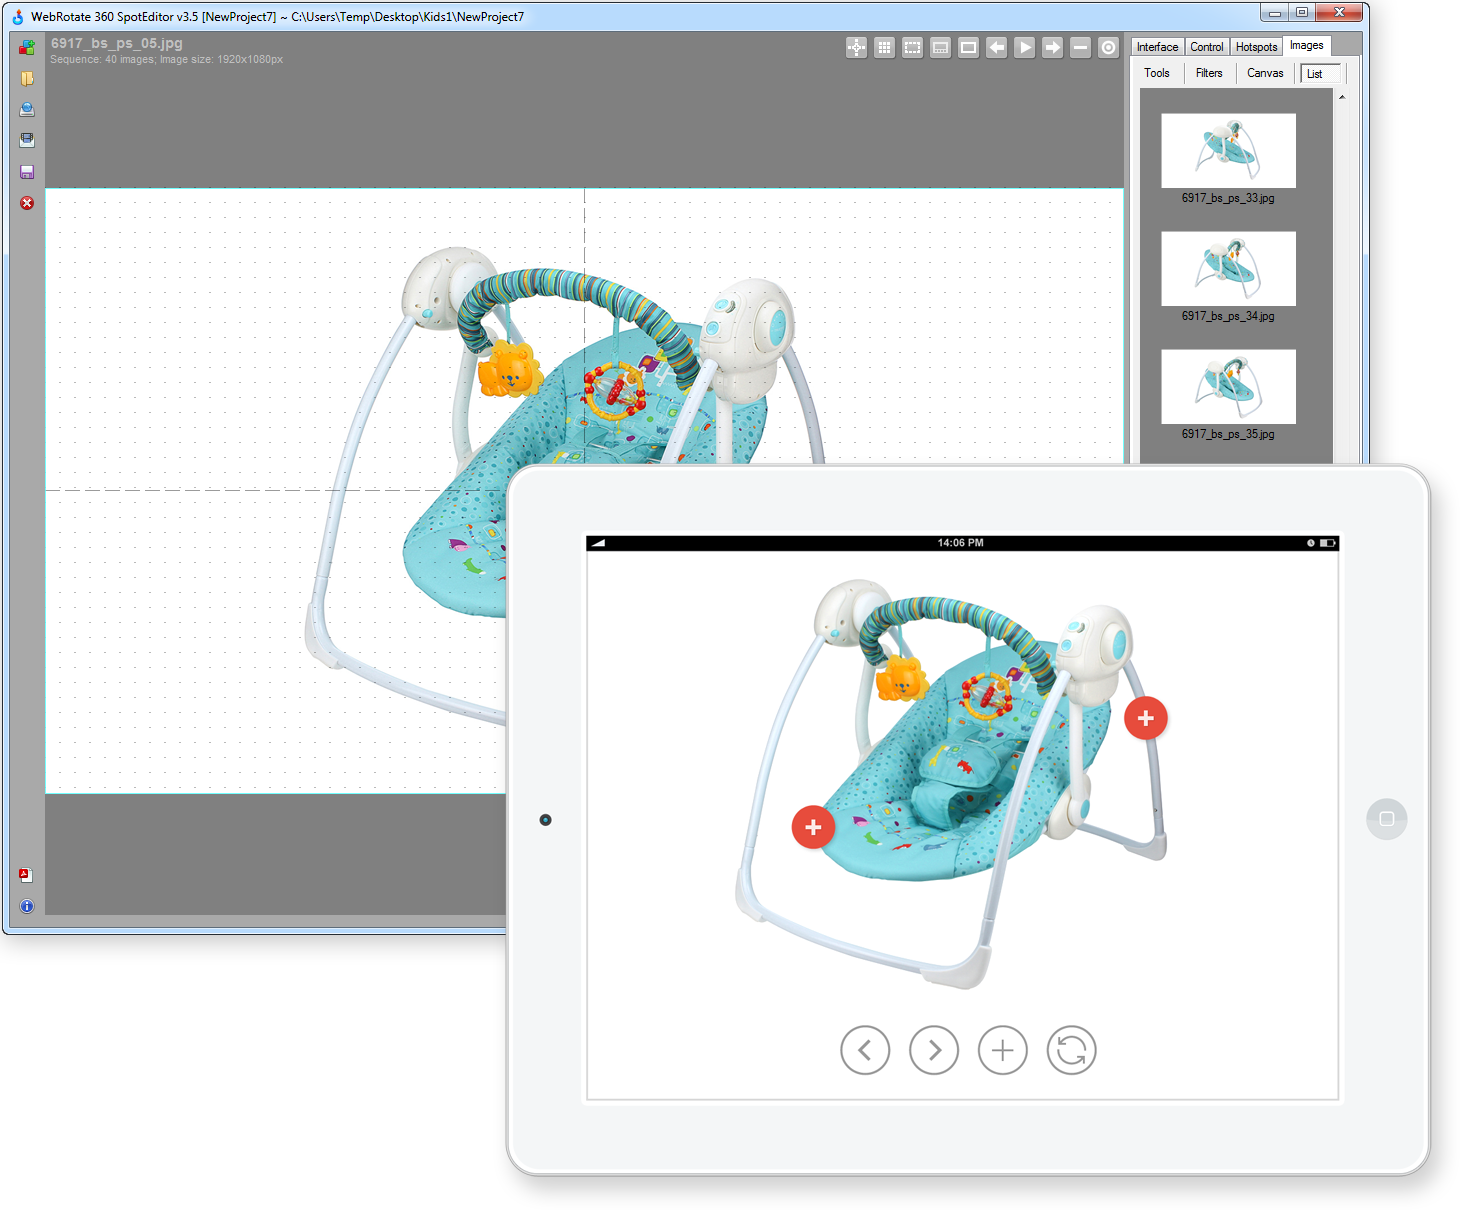 Software and plugins for 3D CAD & 360 product photography